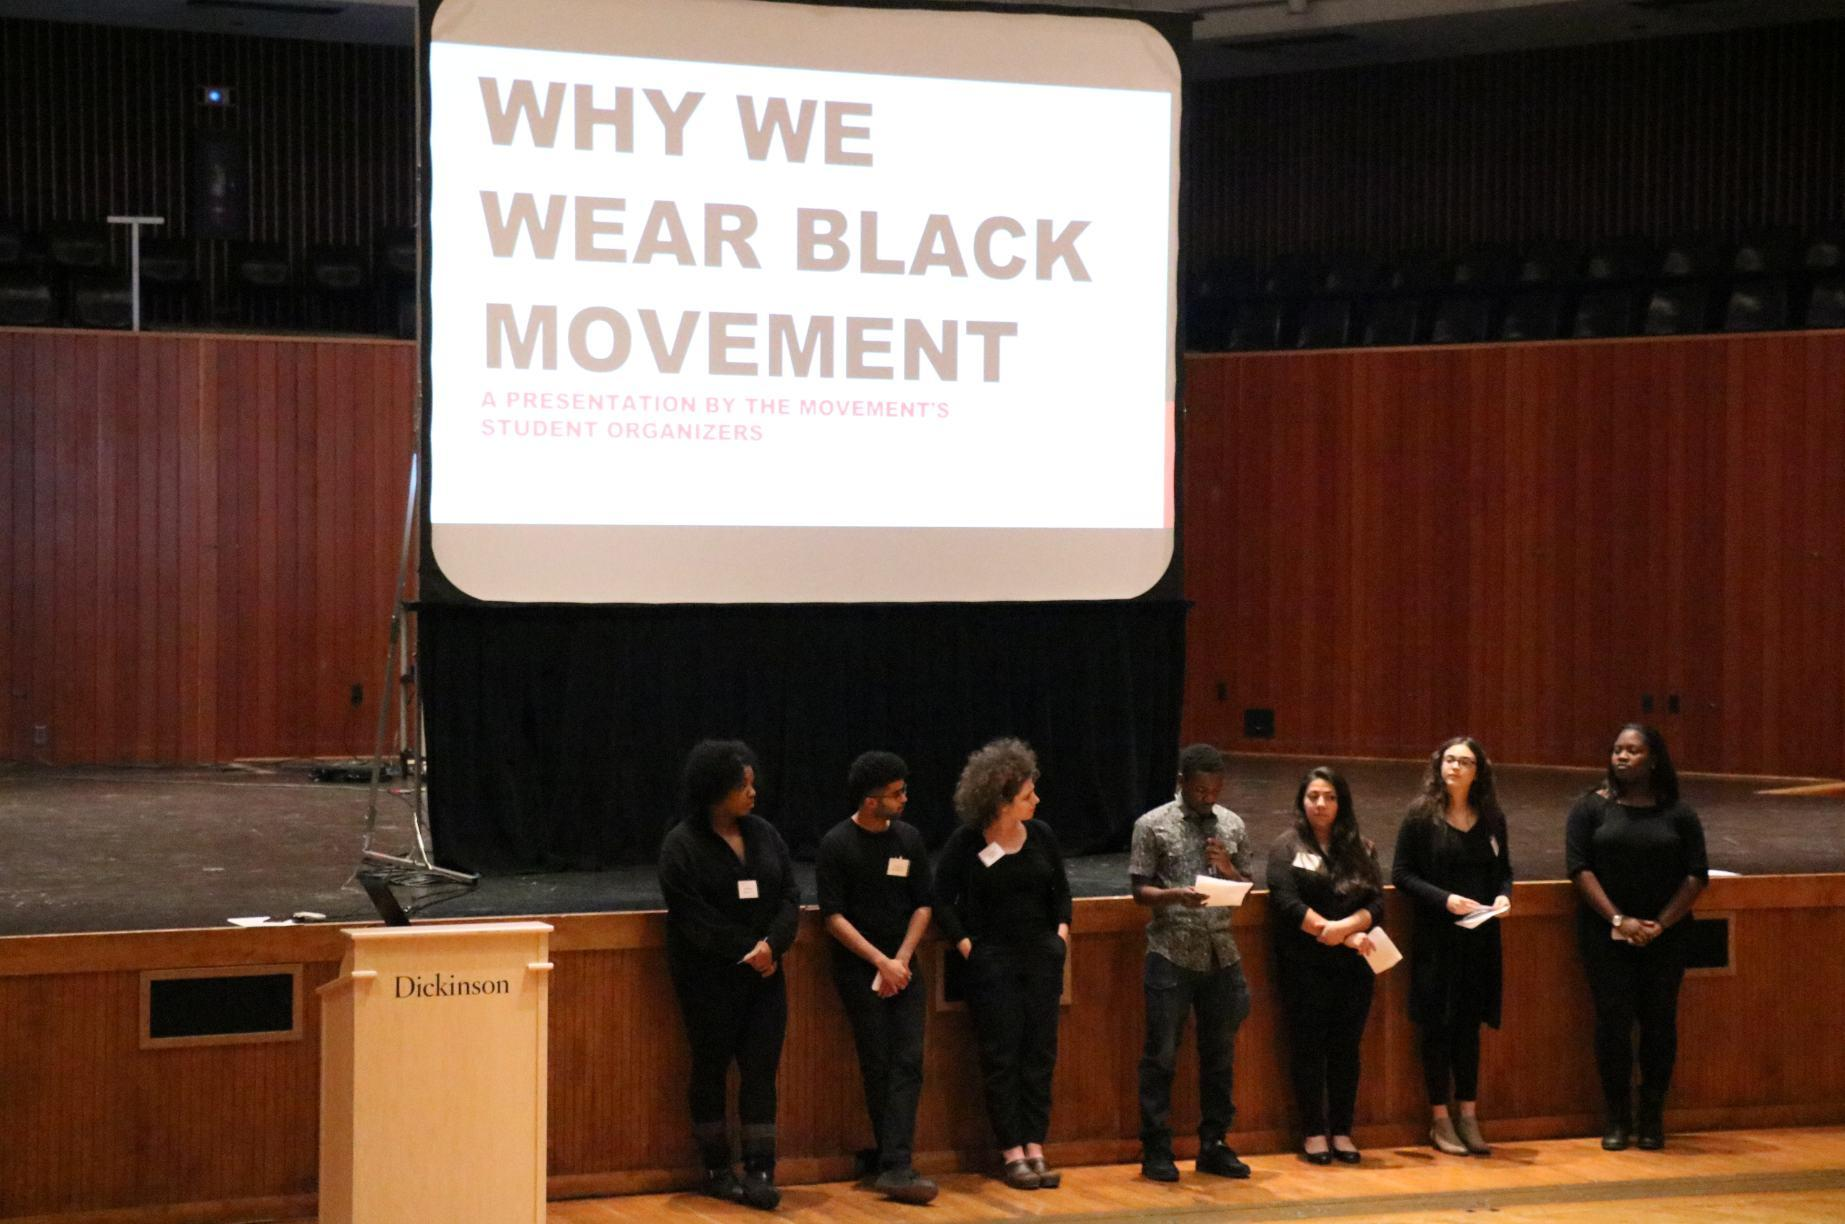 Members of the Why We Wear Black Movement presented their requests for reforms at an open forum held in ATS on Jan. 31. Over 150 students and faculty members attended.